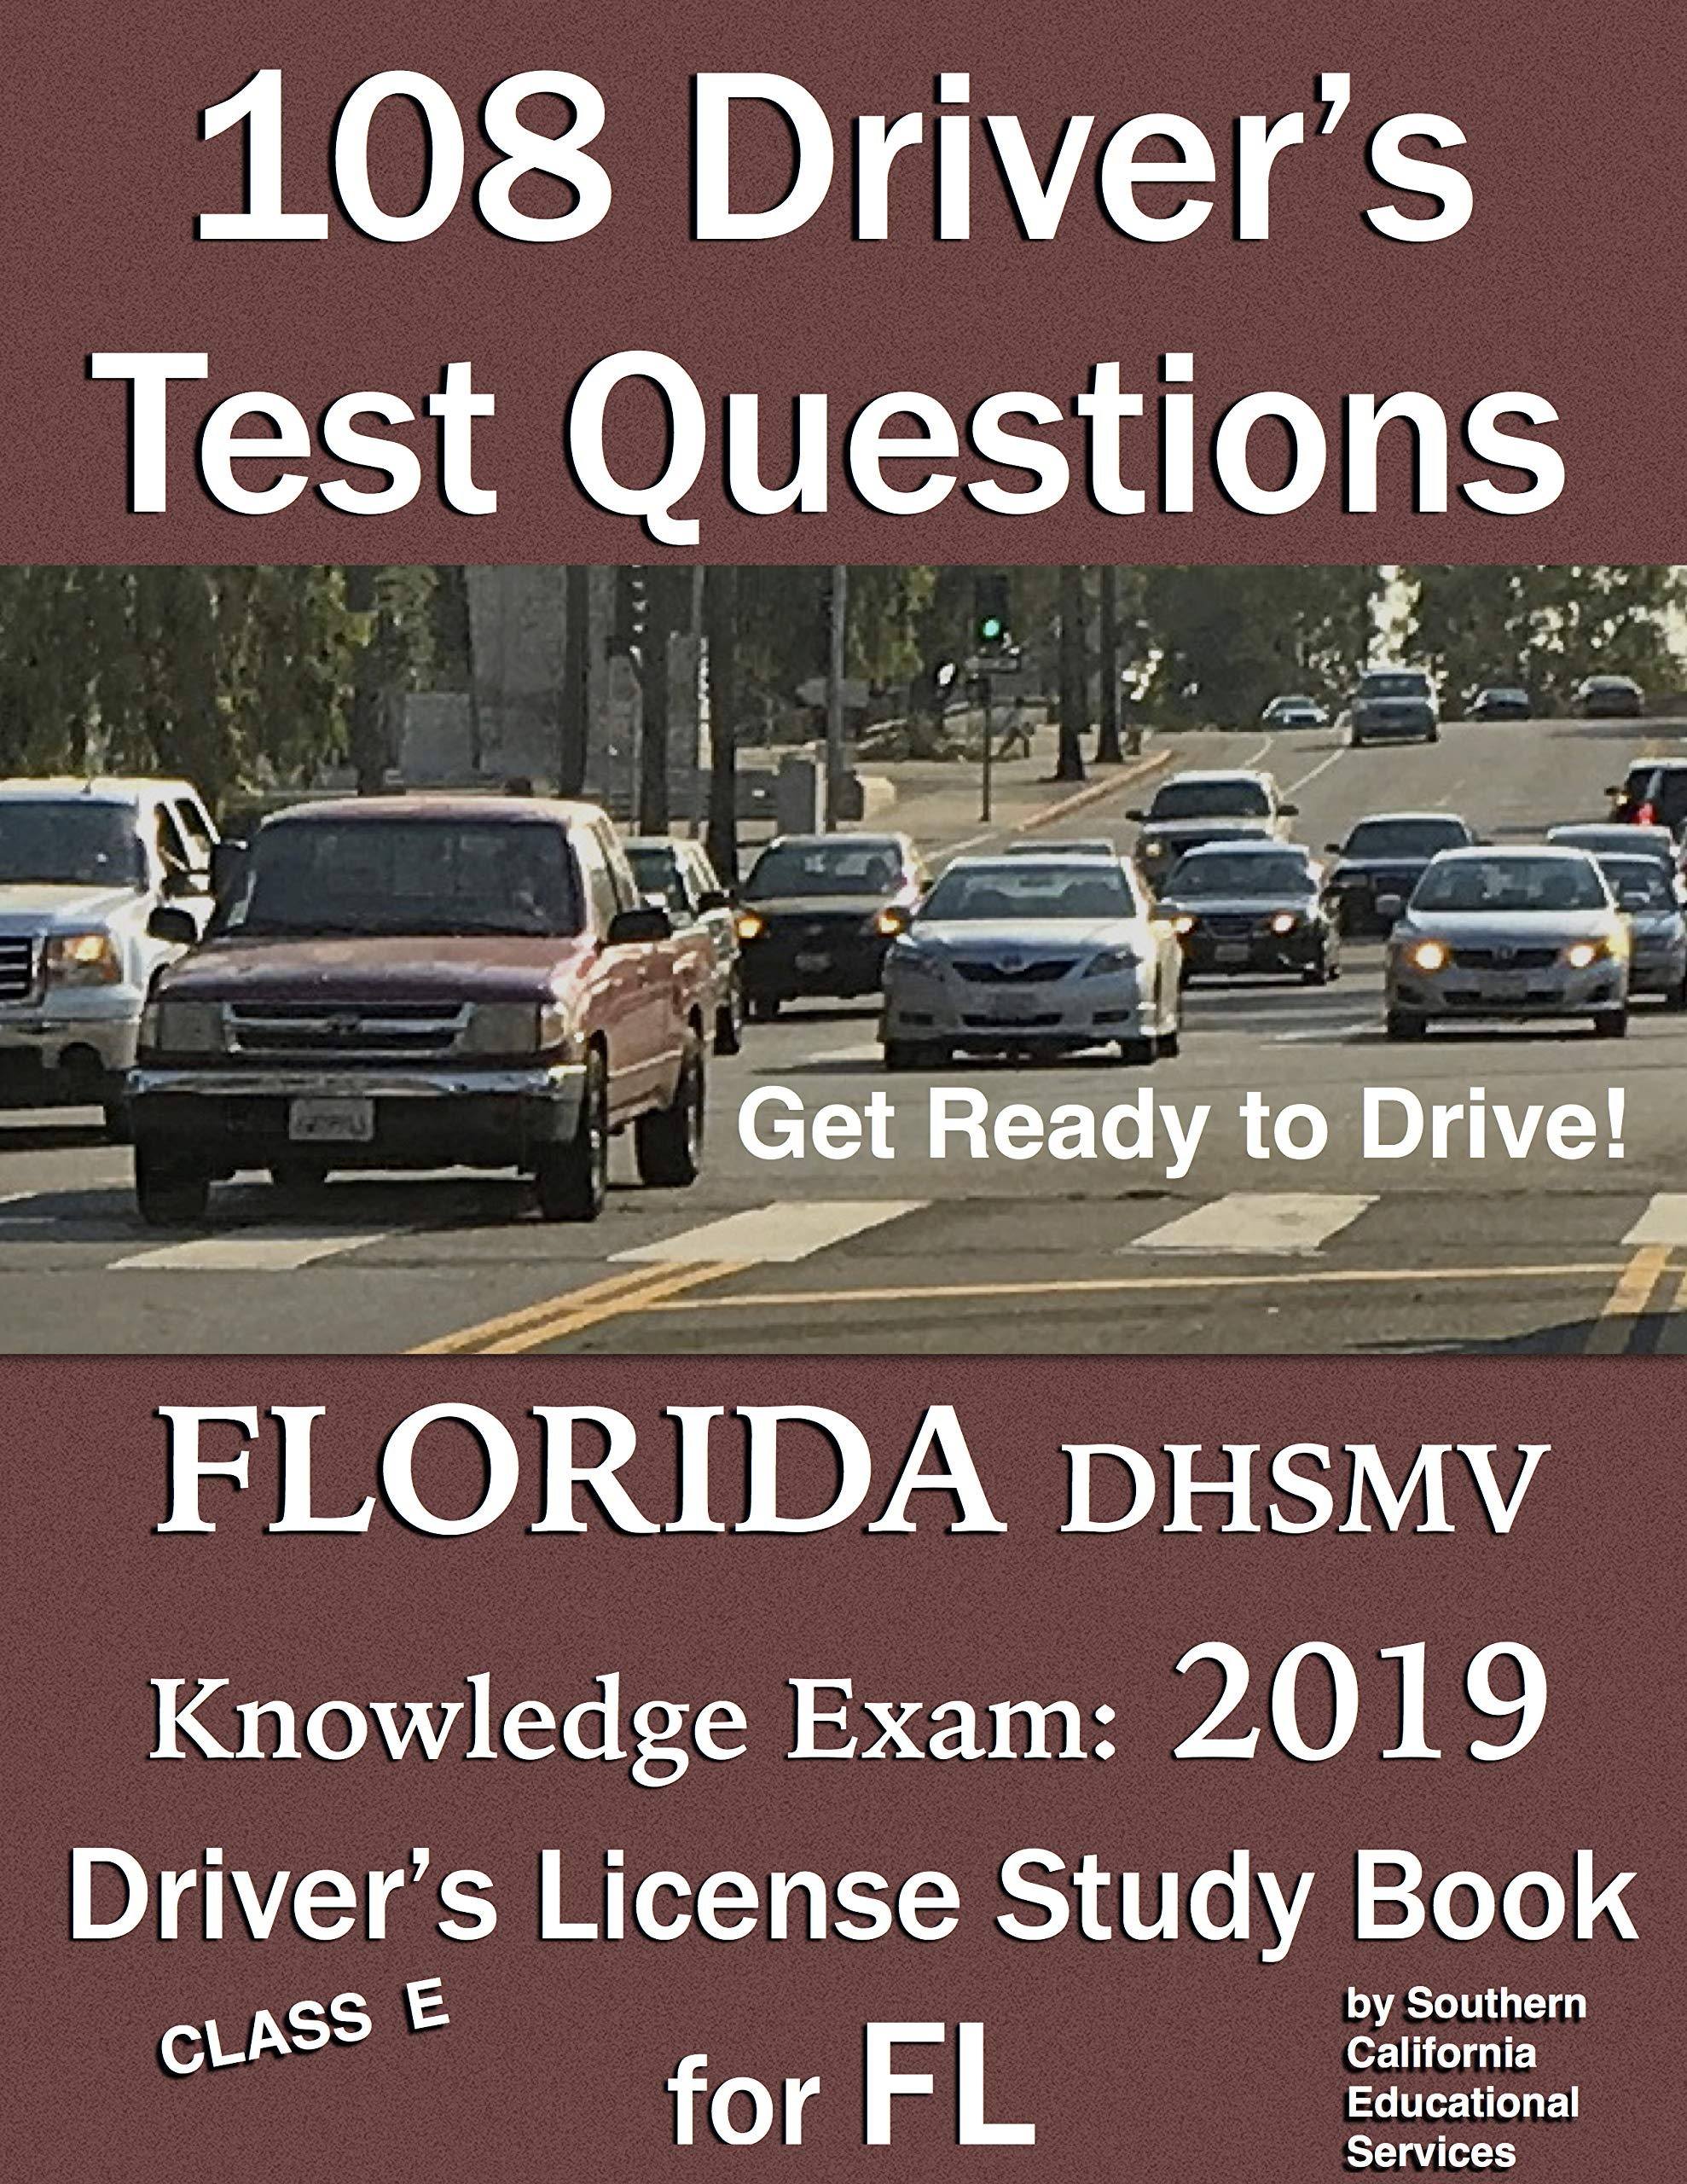 108 Driver's Test Questions For FLORIDA DHSMV Written Knowledge Exam  Your 2019 FL Class E Driver's Permit License Study Book Handbook  English Edition